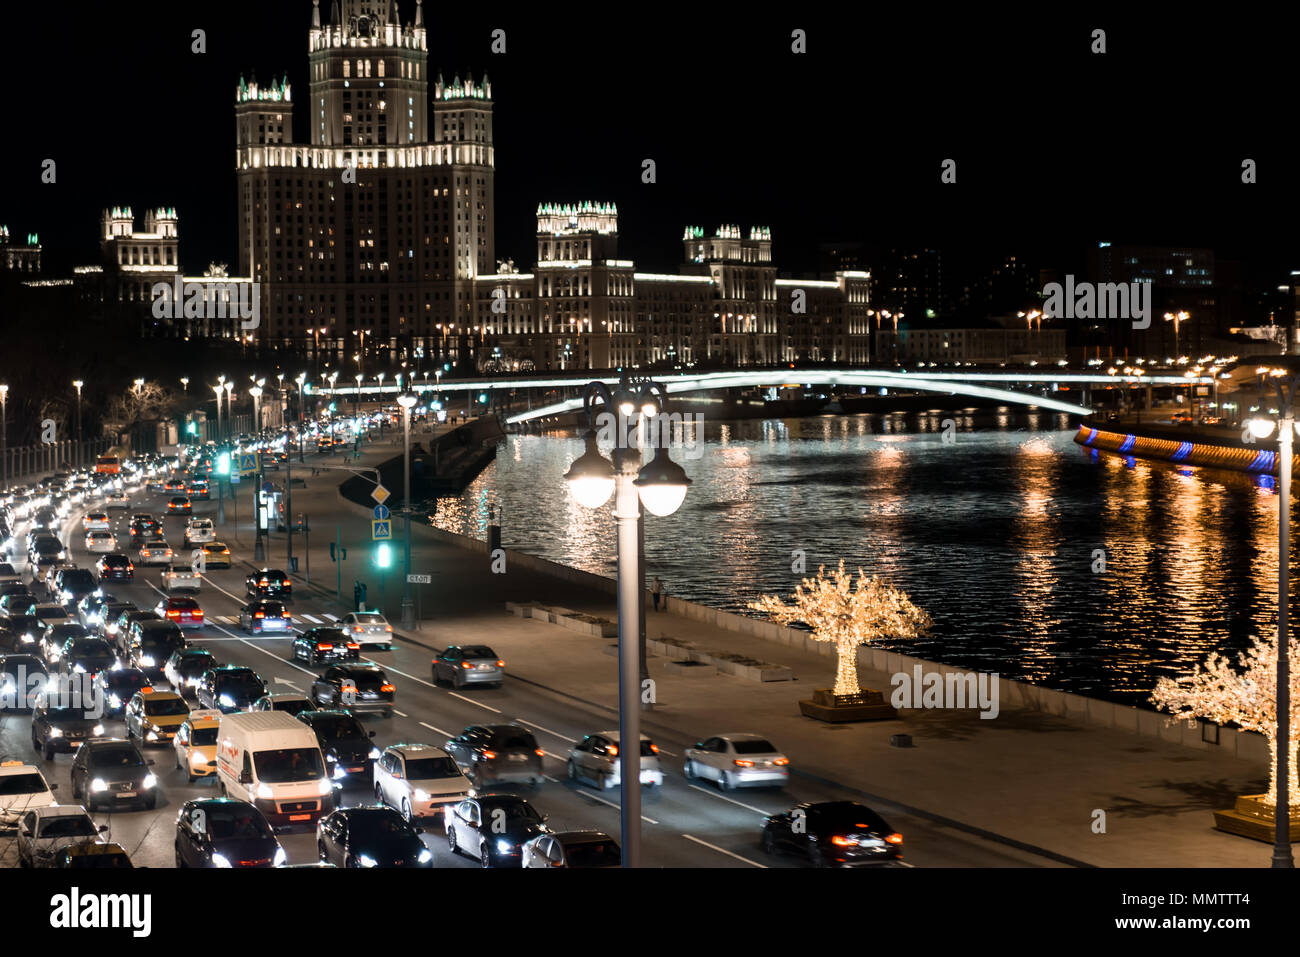 Moscow. Russia. Traffic jam in the center of the metropolis. - Stock Image